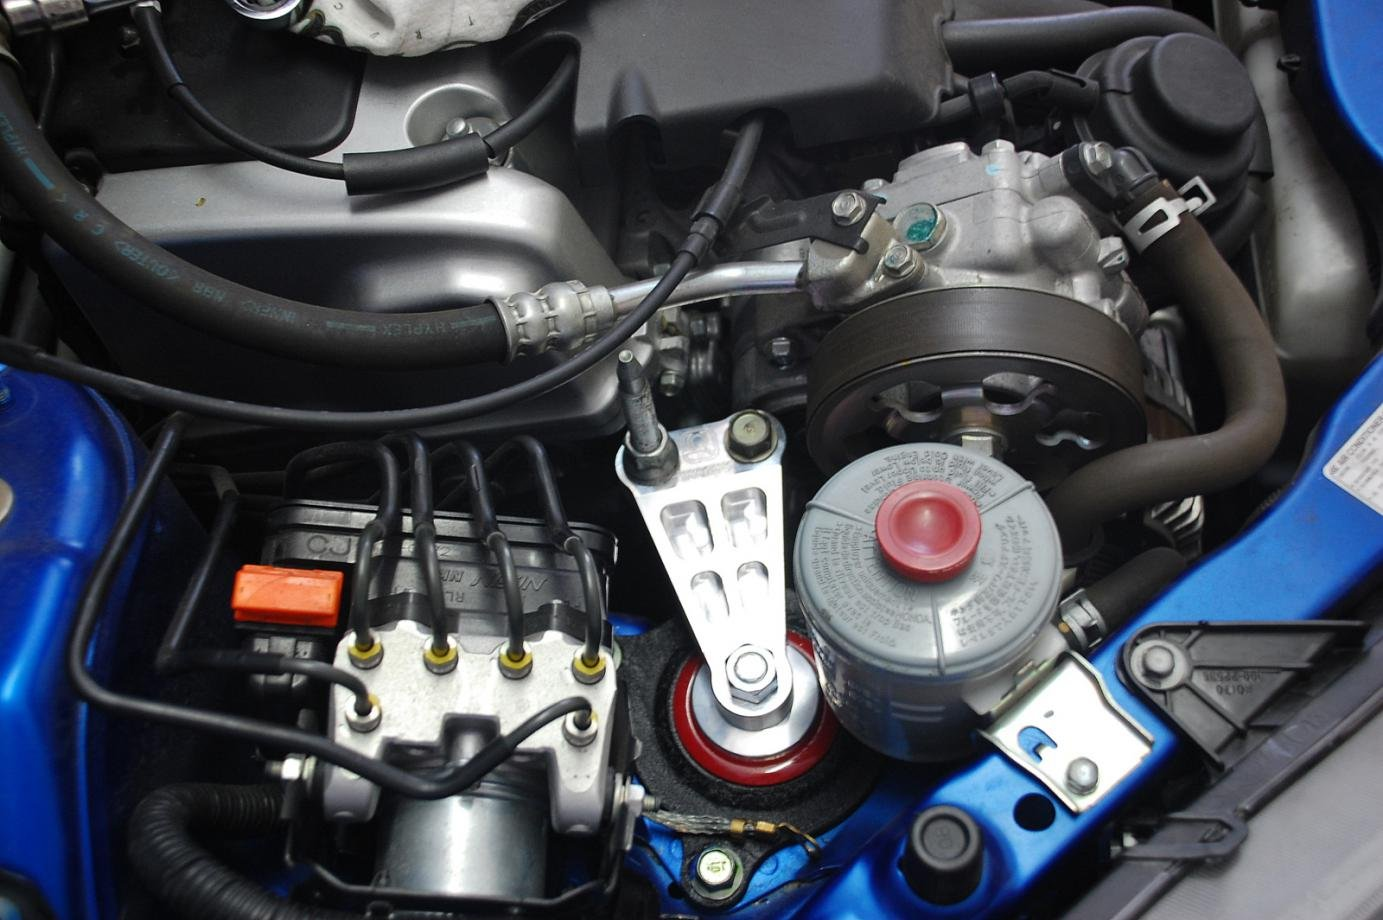 Motor Mount Snapped Page Acura Forum Acura Forums - Acura rsx motor mounts